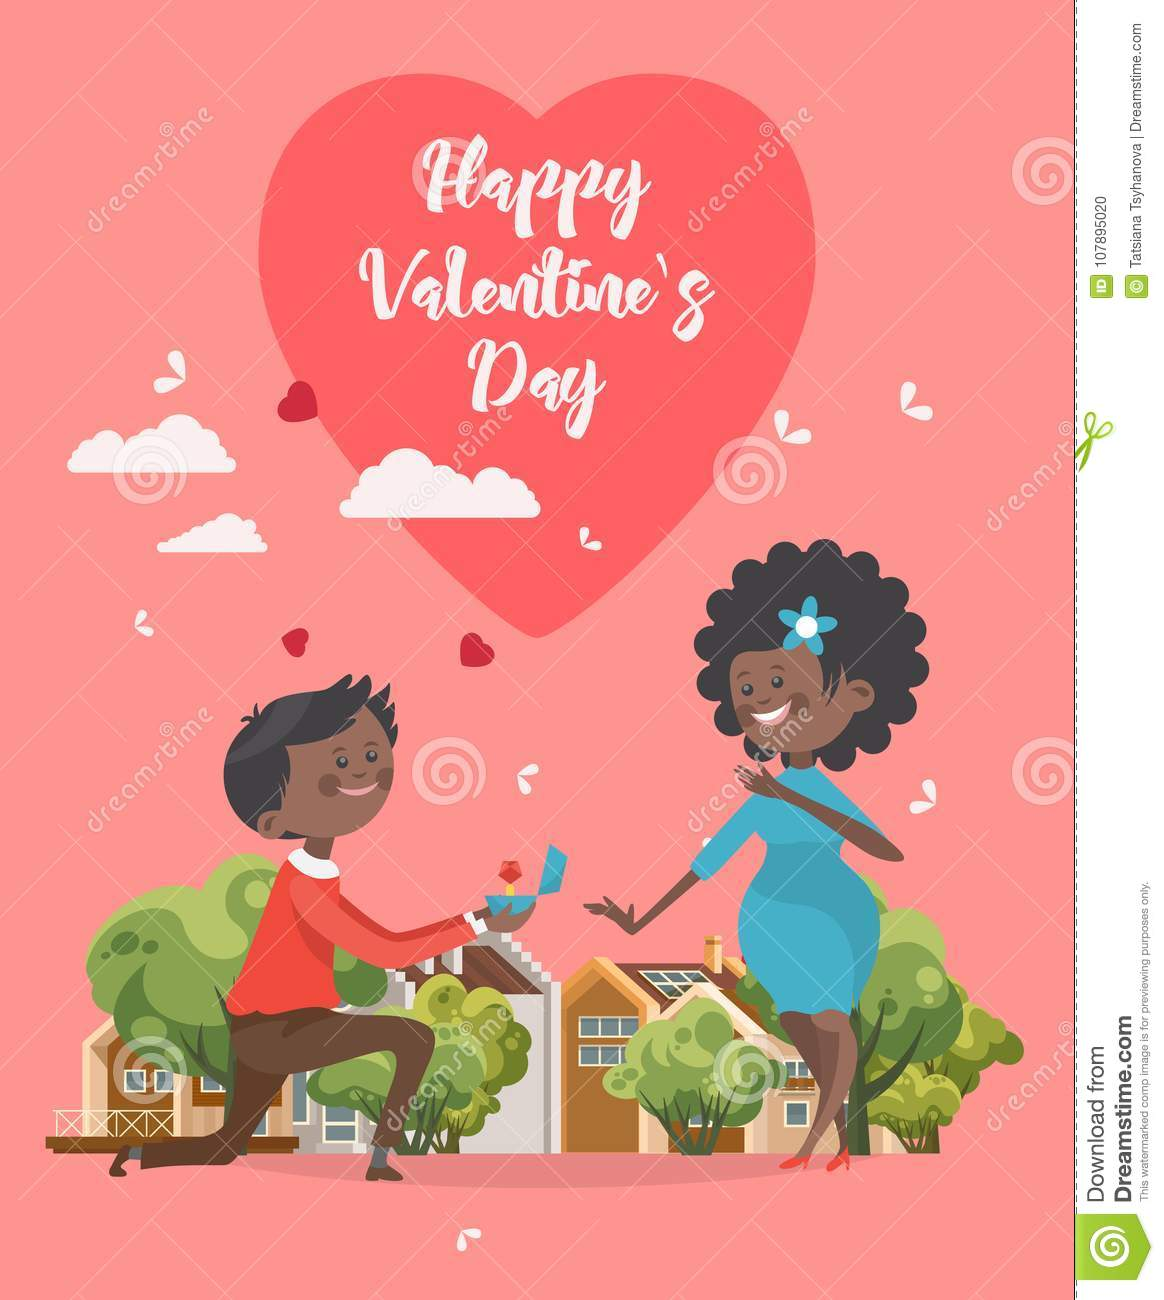 Happy valentines day vector engagement greeting card with african download happy valentines day vector engagement greeting card with african america couple valentine m4hsunfo